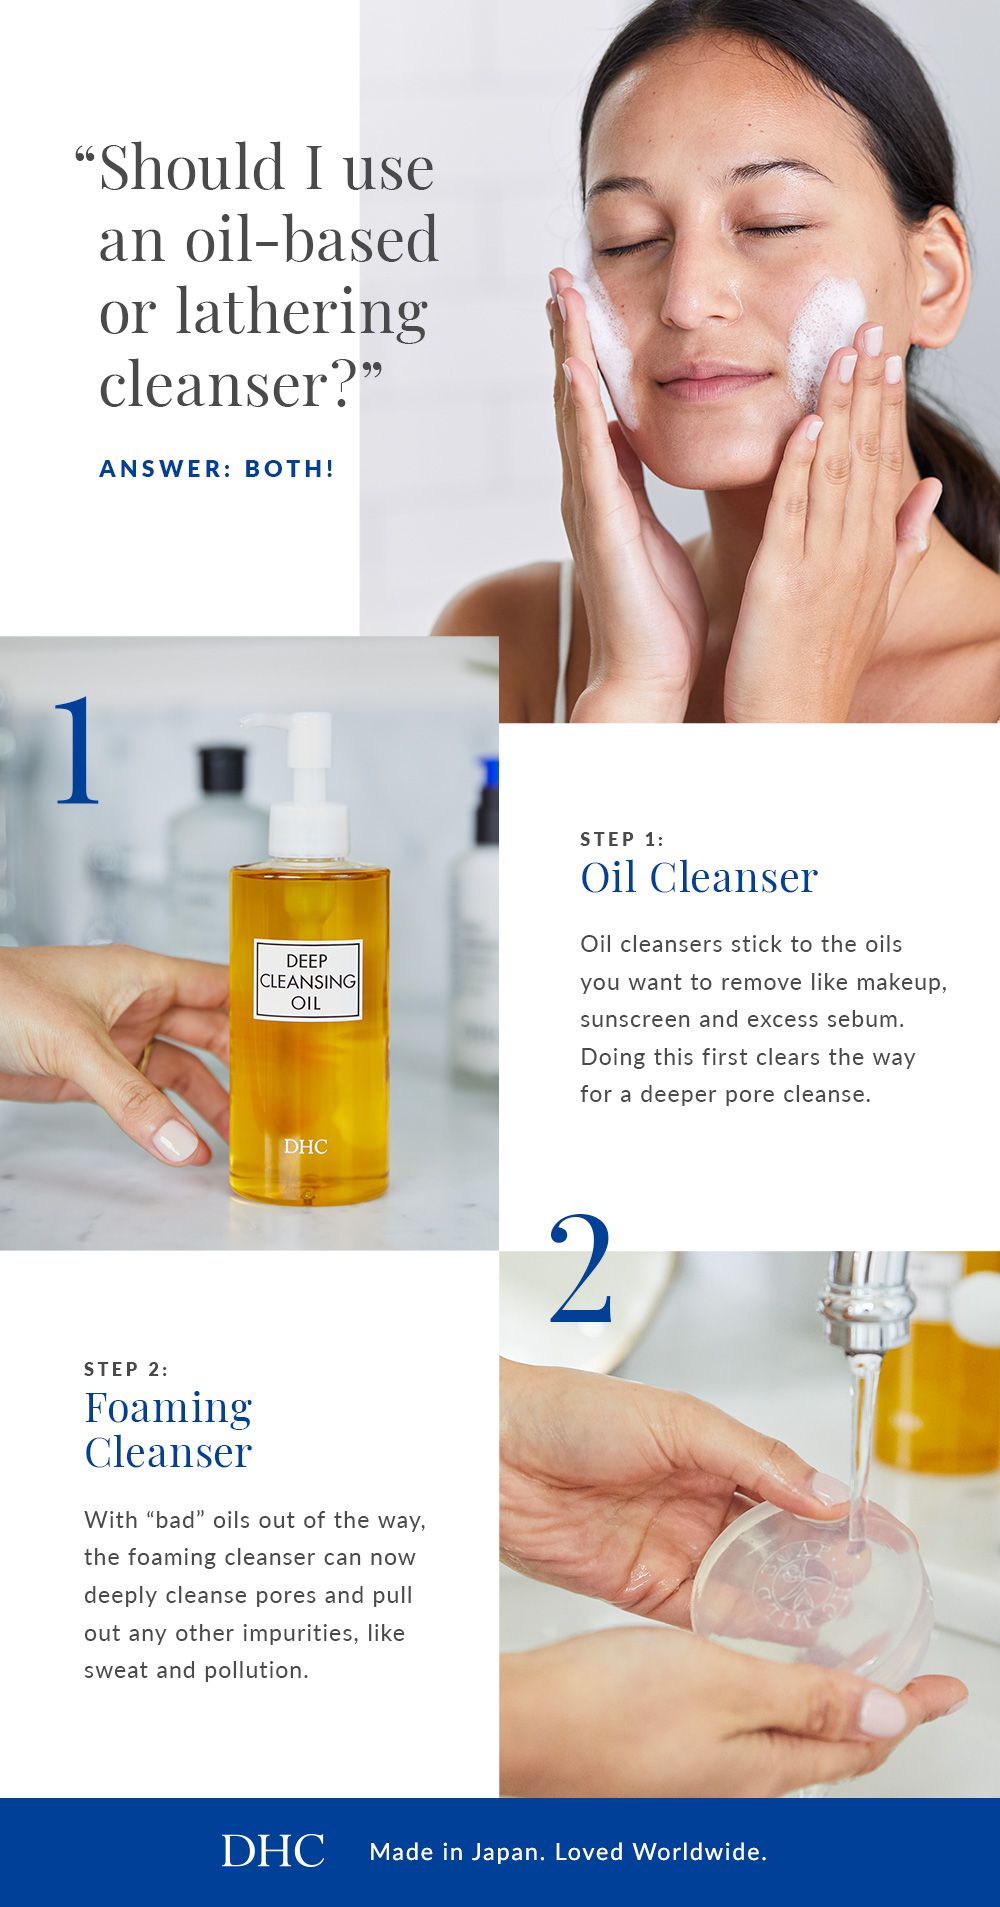 The Double Cleanse Ritual Foam Cleanser Oil Based Cleanser Oil Cleanser